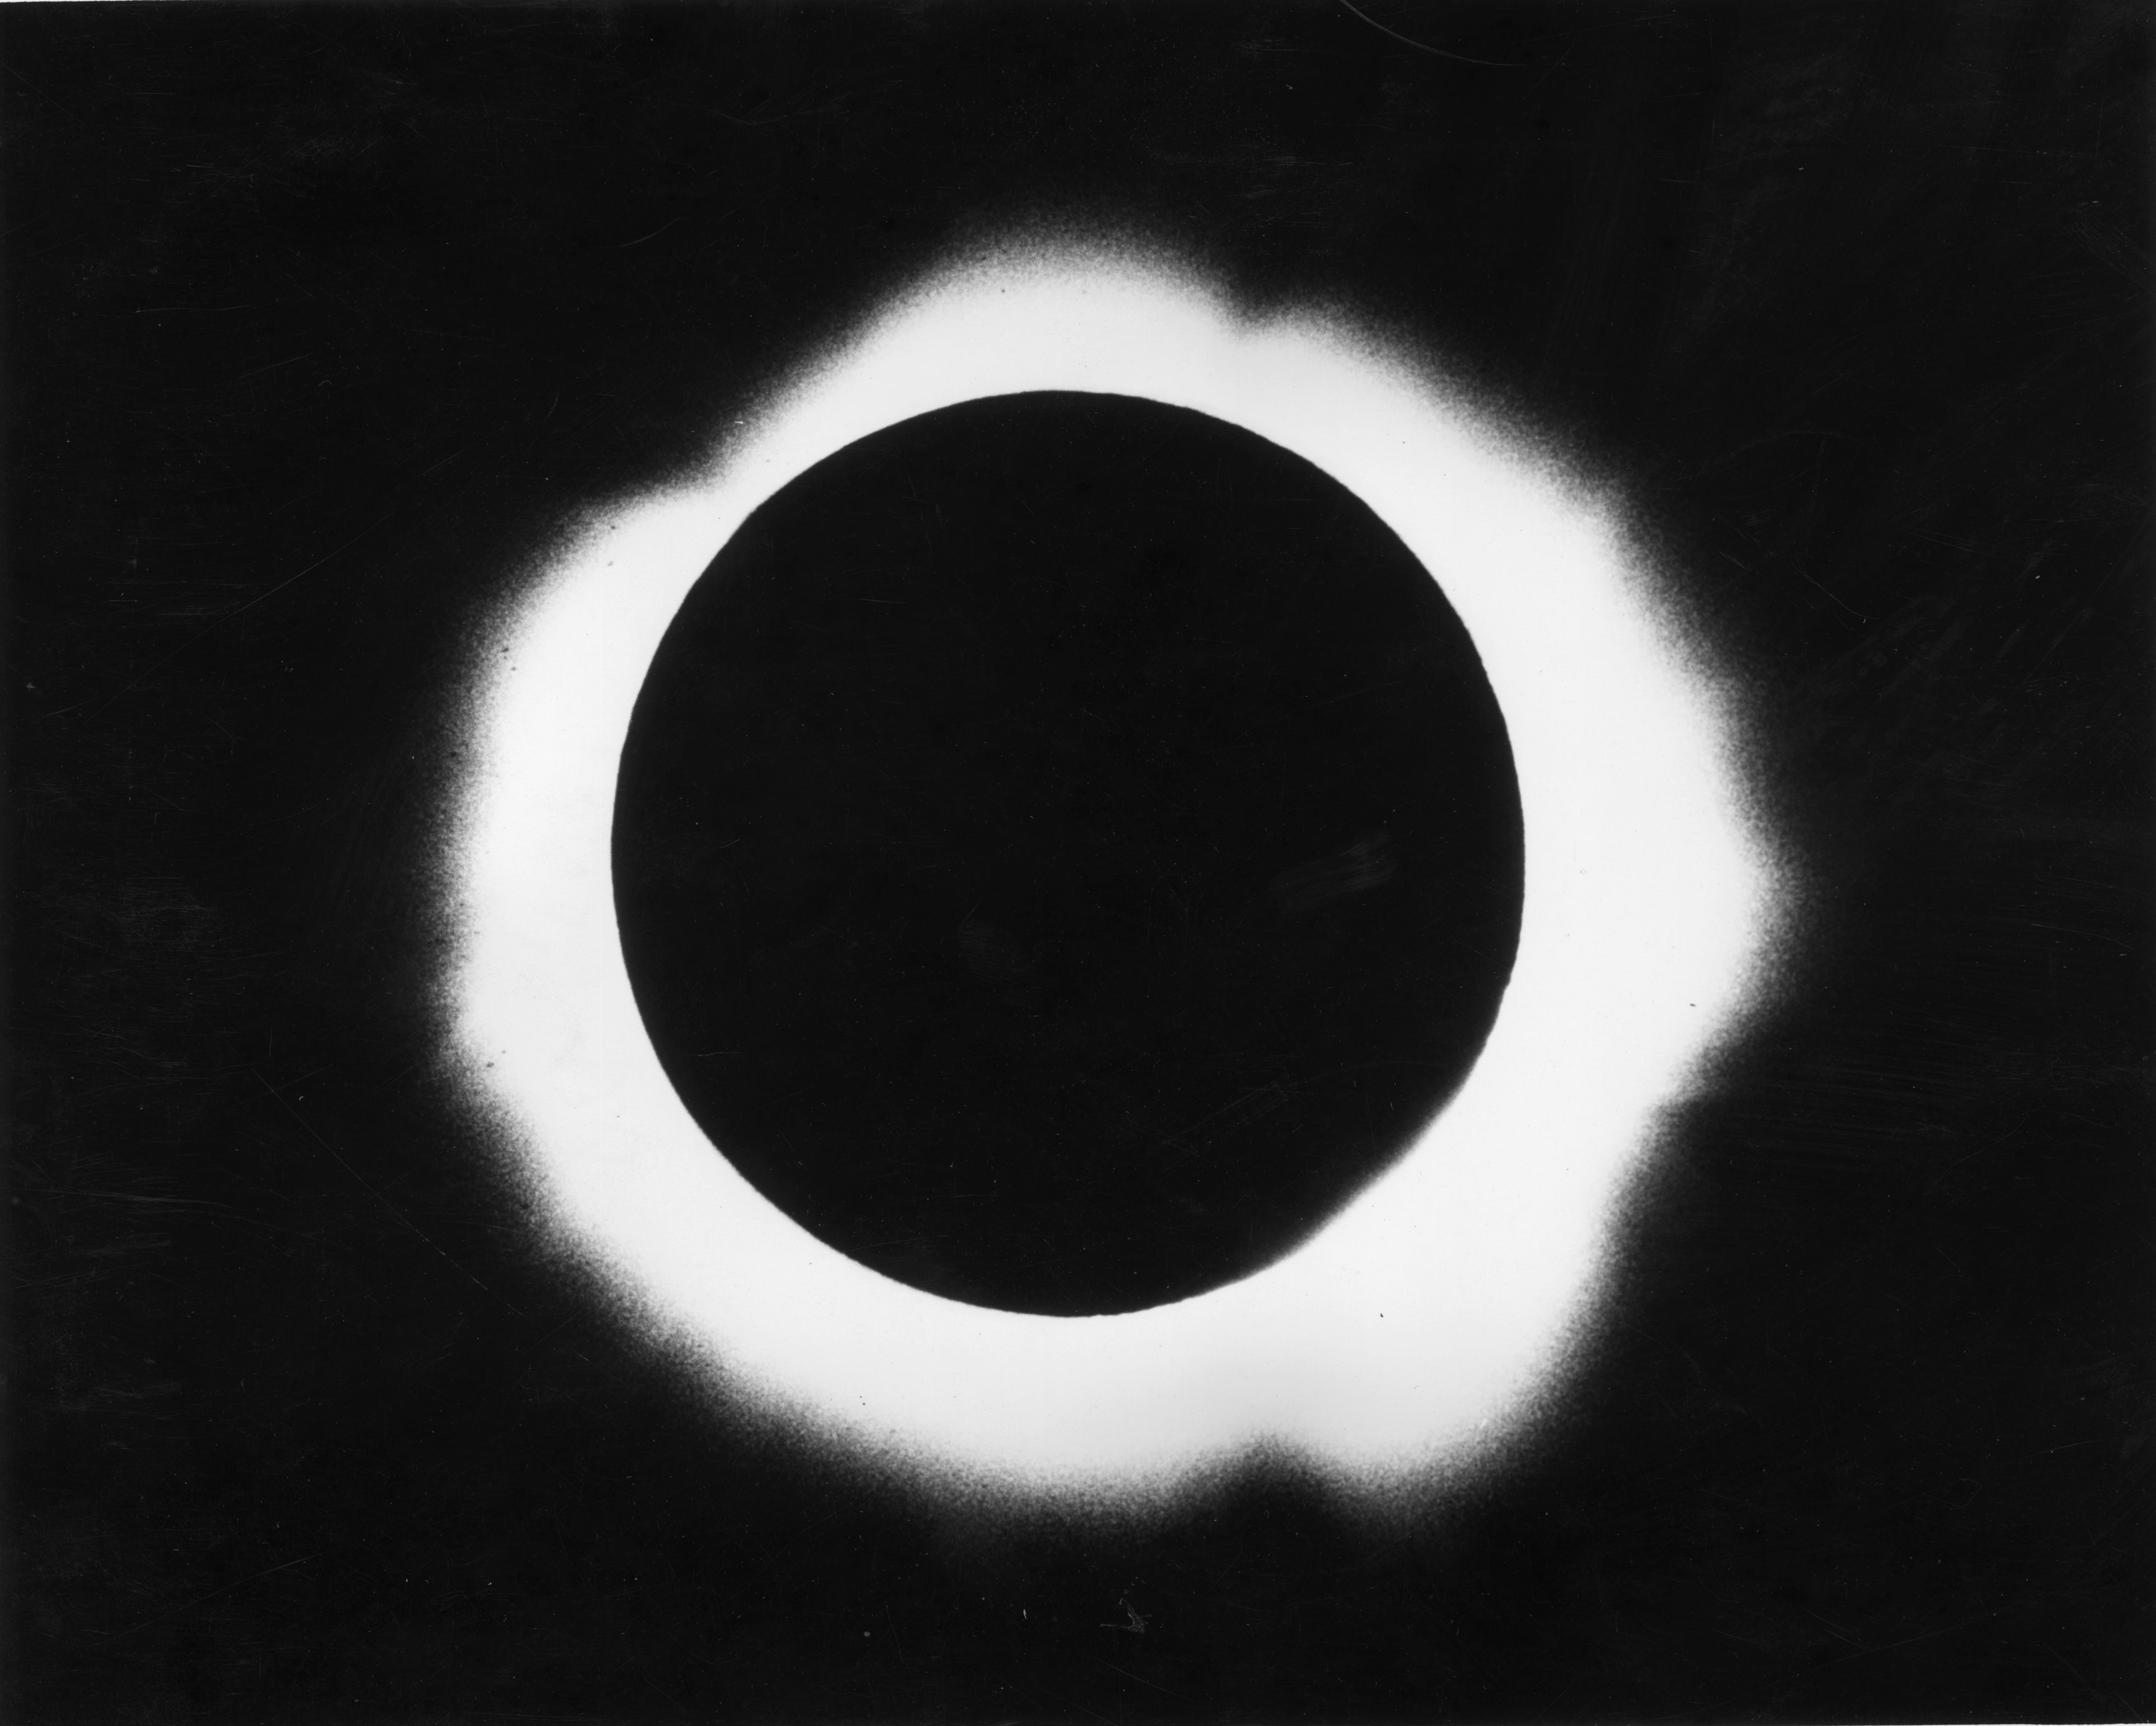 Total Solar Eclipse in 1979 Ended With Moving Message